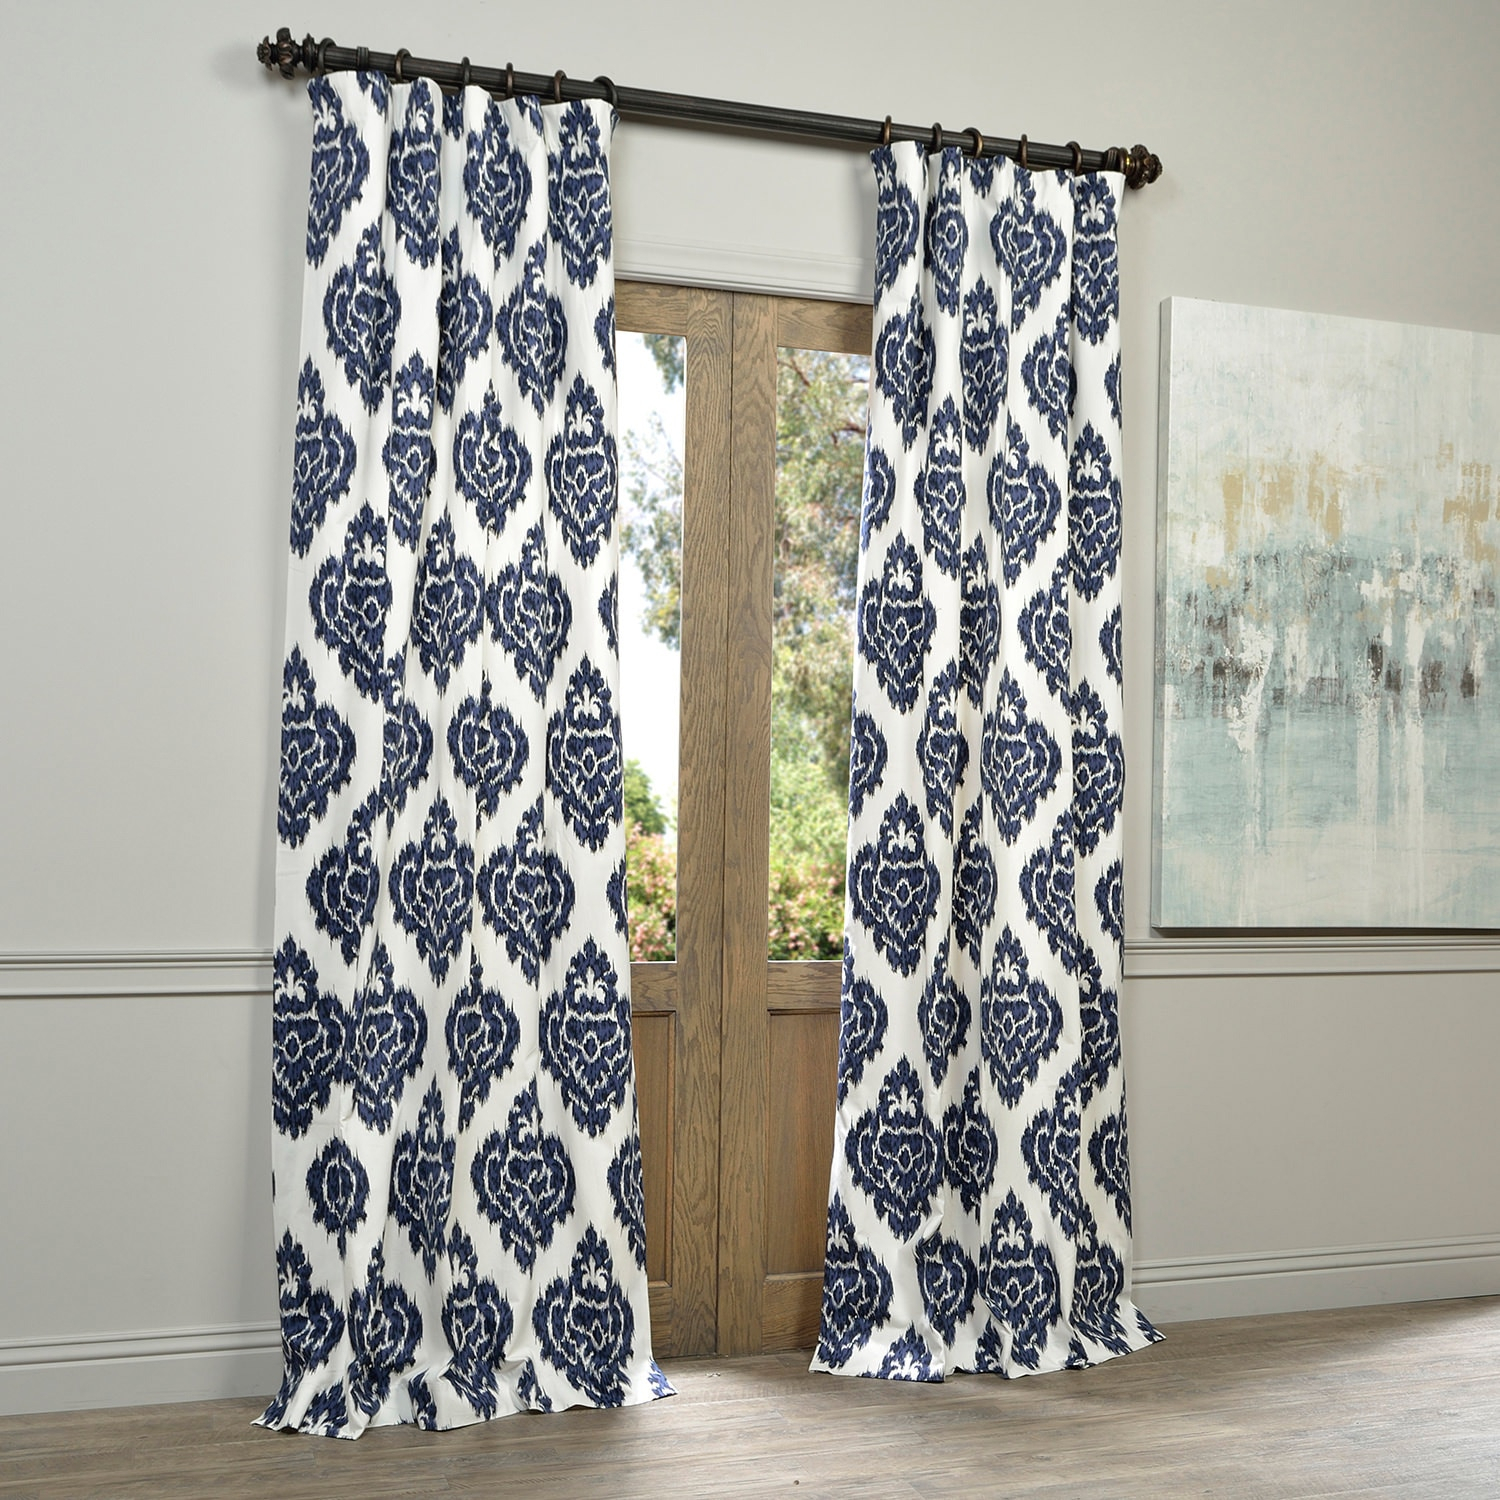 Exclusive Fabrics Ikat Blue Printed Cotton Curtain Panel In Ikat Blue Printed Cotton Curtain Panels (View 6 of 20)